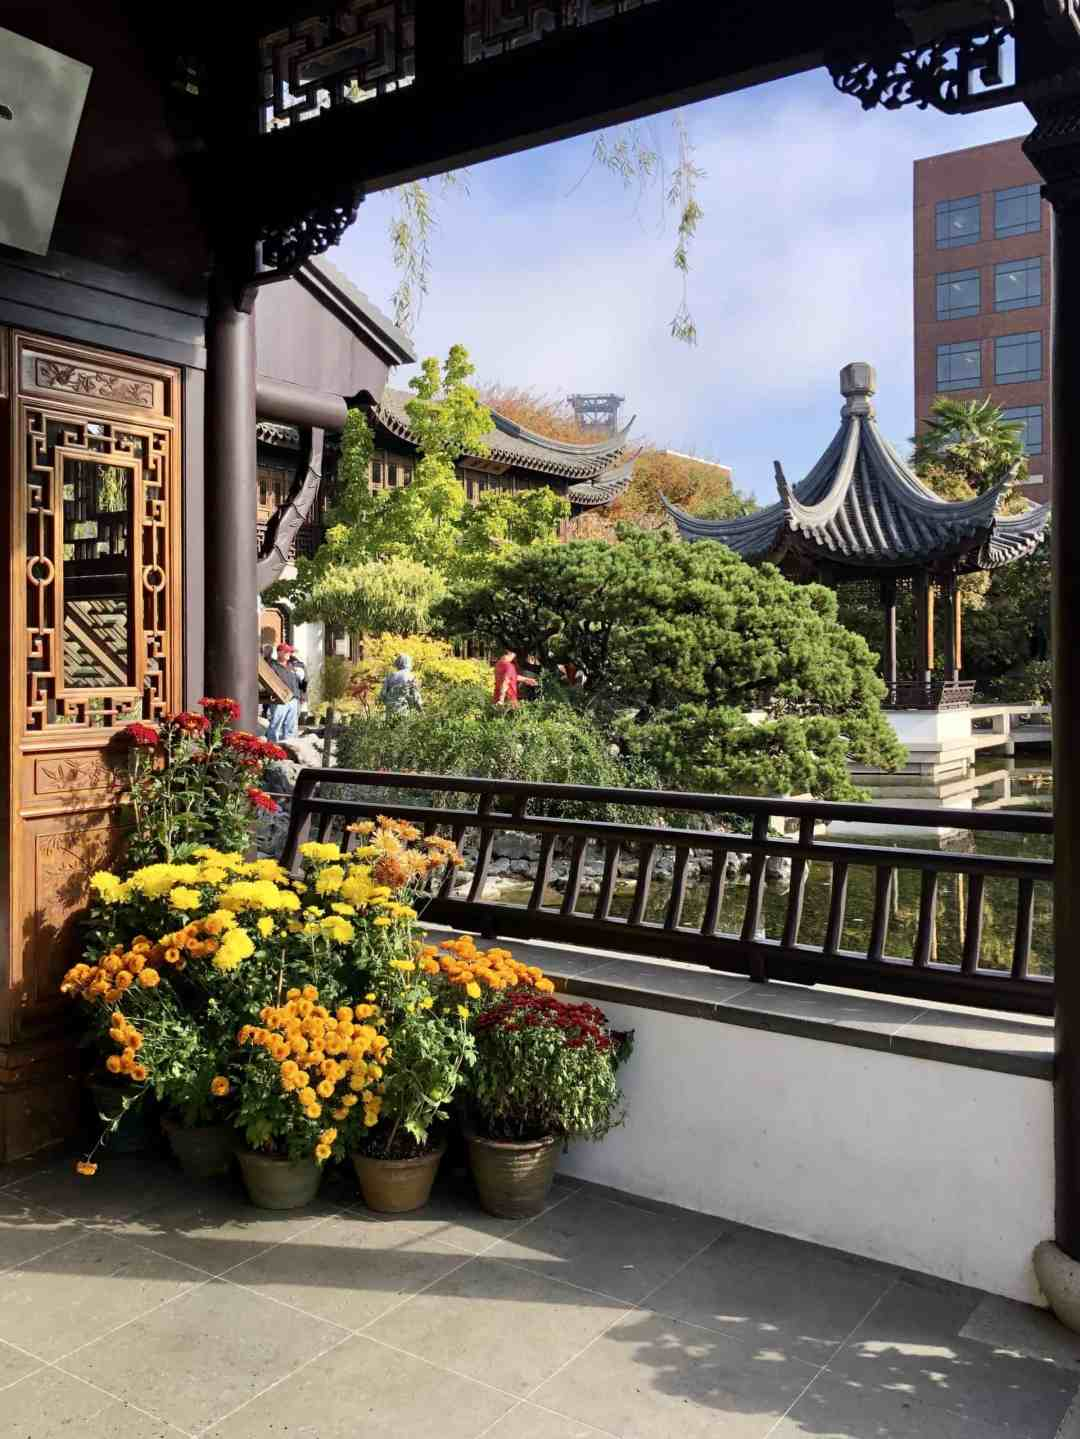 Cool places to go in Portland - Lan Su Chinese Garden